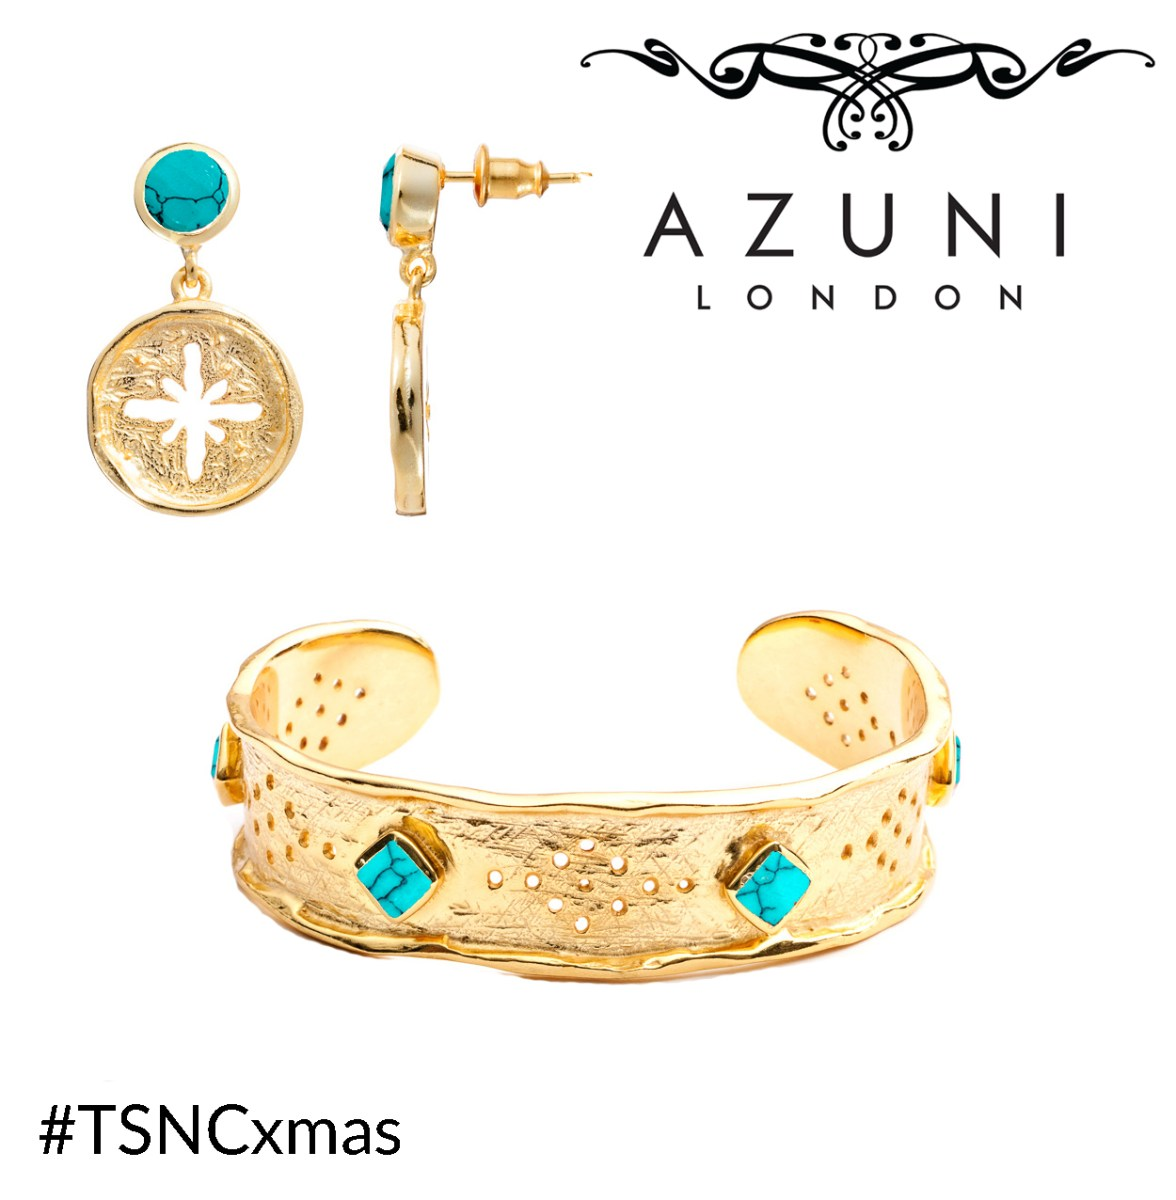 TSNC Advent Giveaway: Azuni London Jewellery! #TSNCxmas